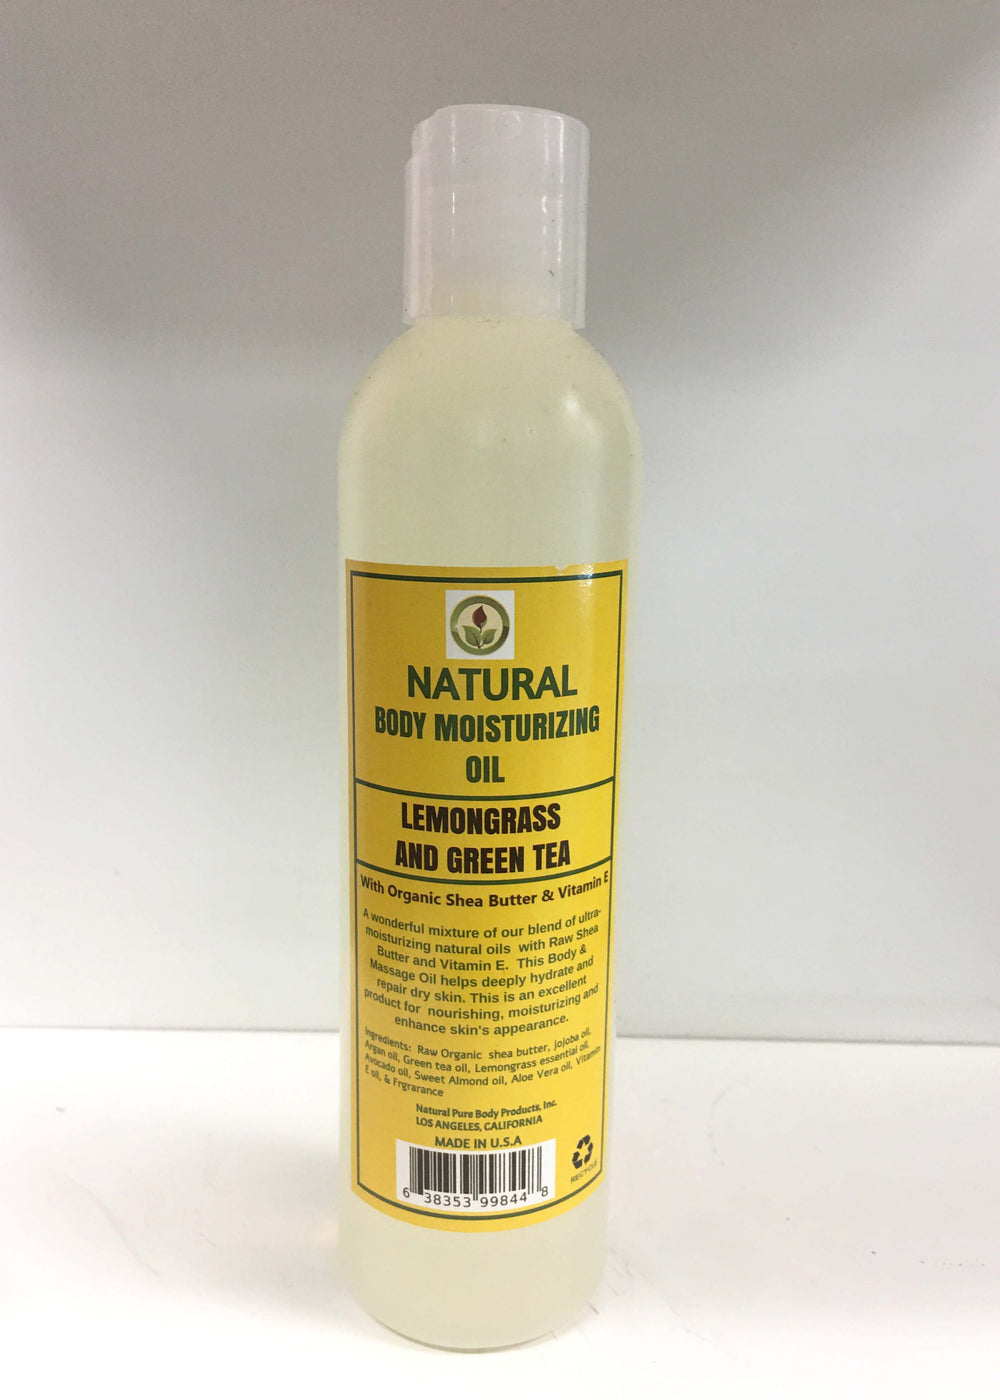 Lemongrass and Green Tea Body Moisturizing Oil